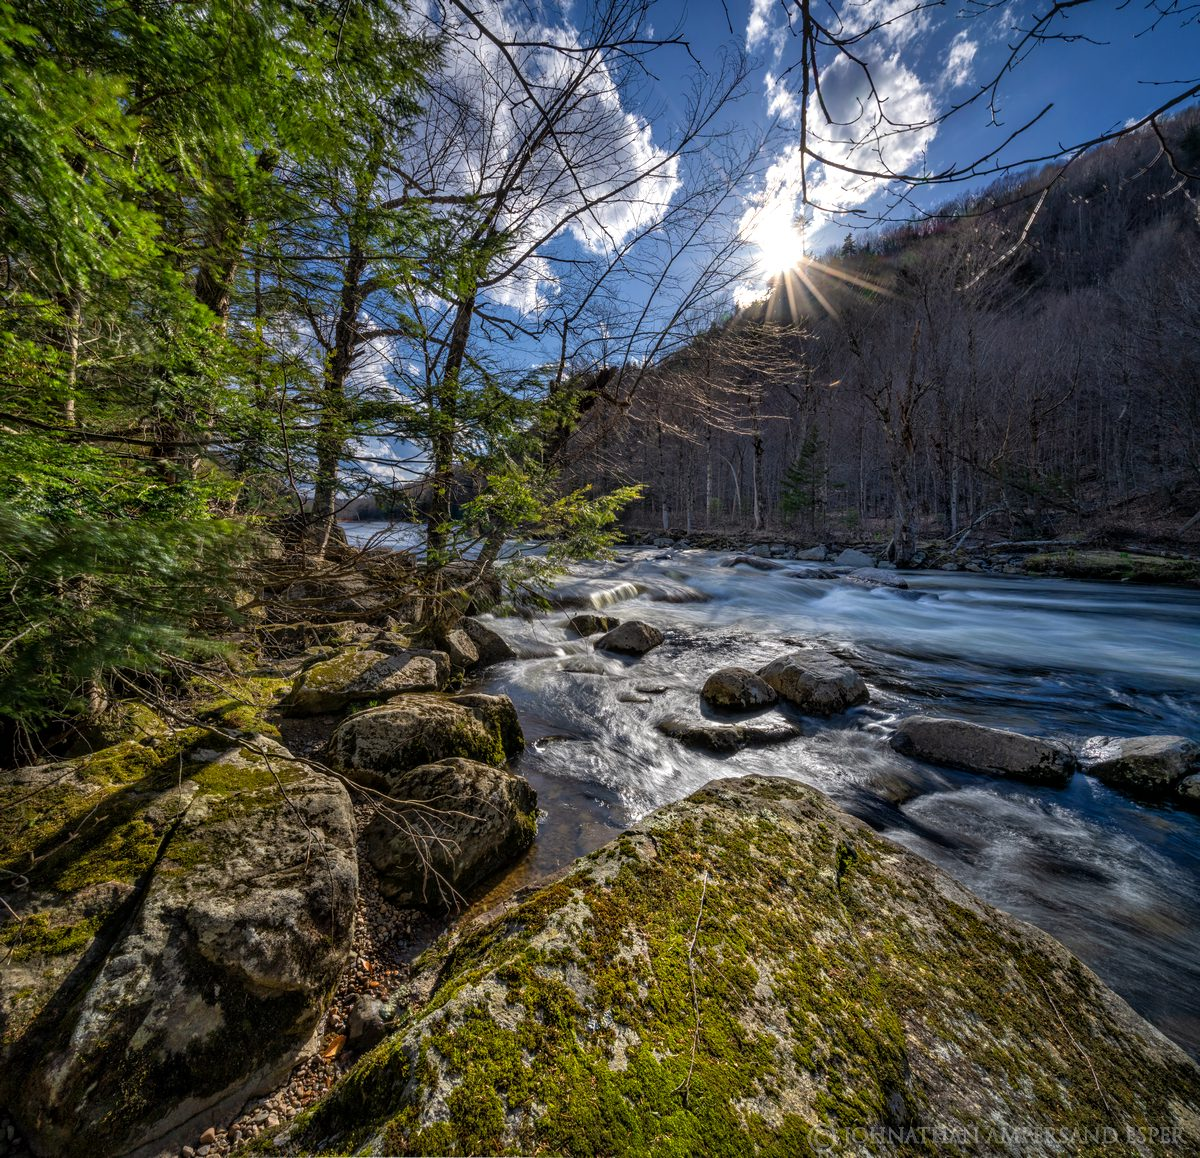 Ausable River,Wilmington Notch,spring,May,2020,square,sunny,river,rocks,moss